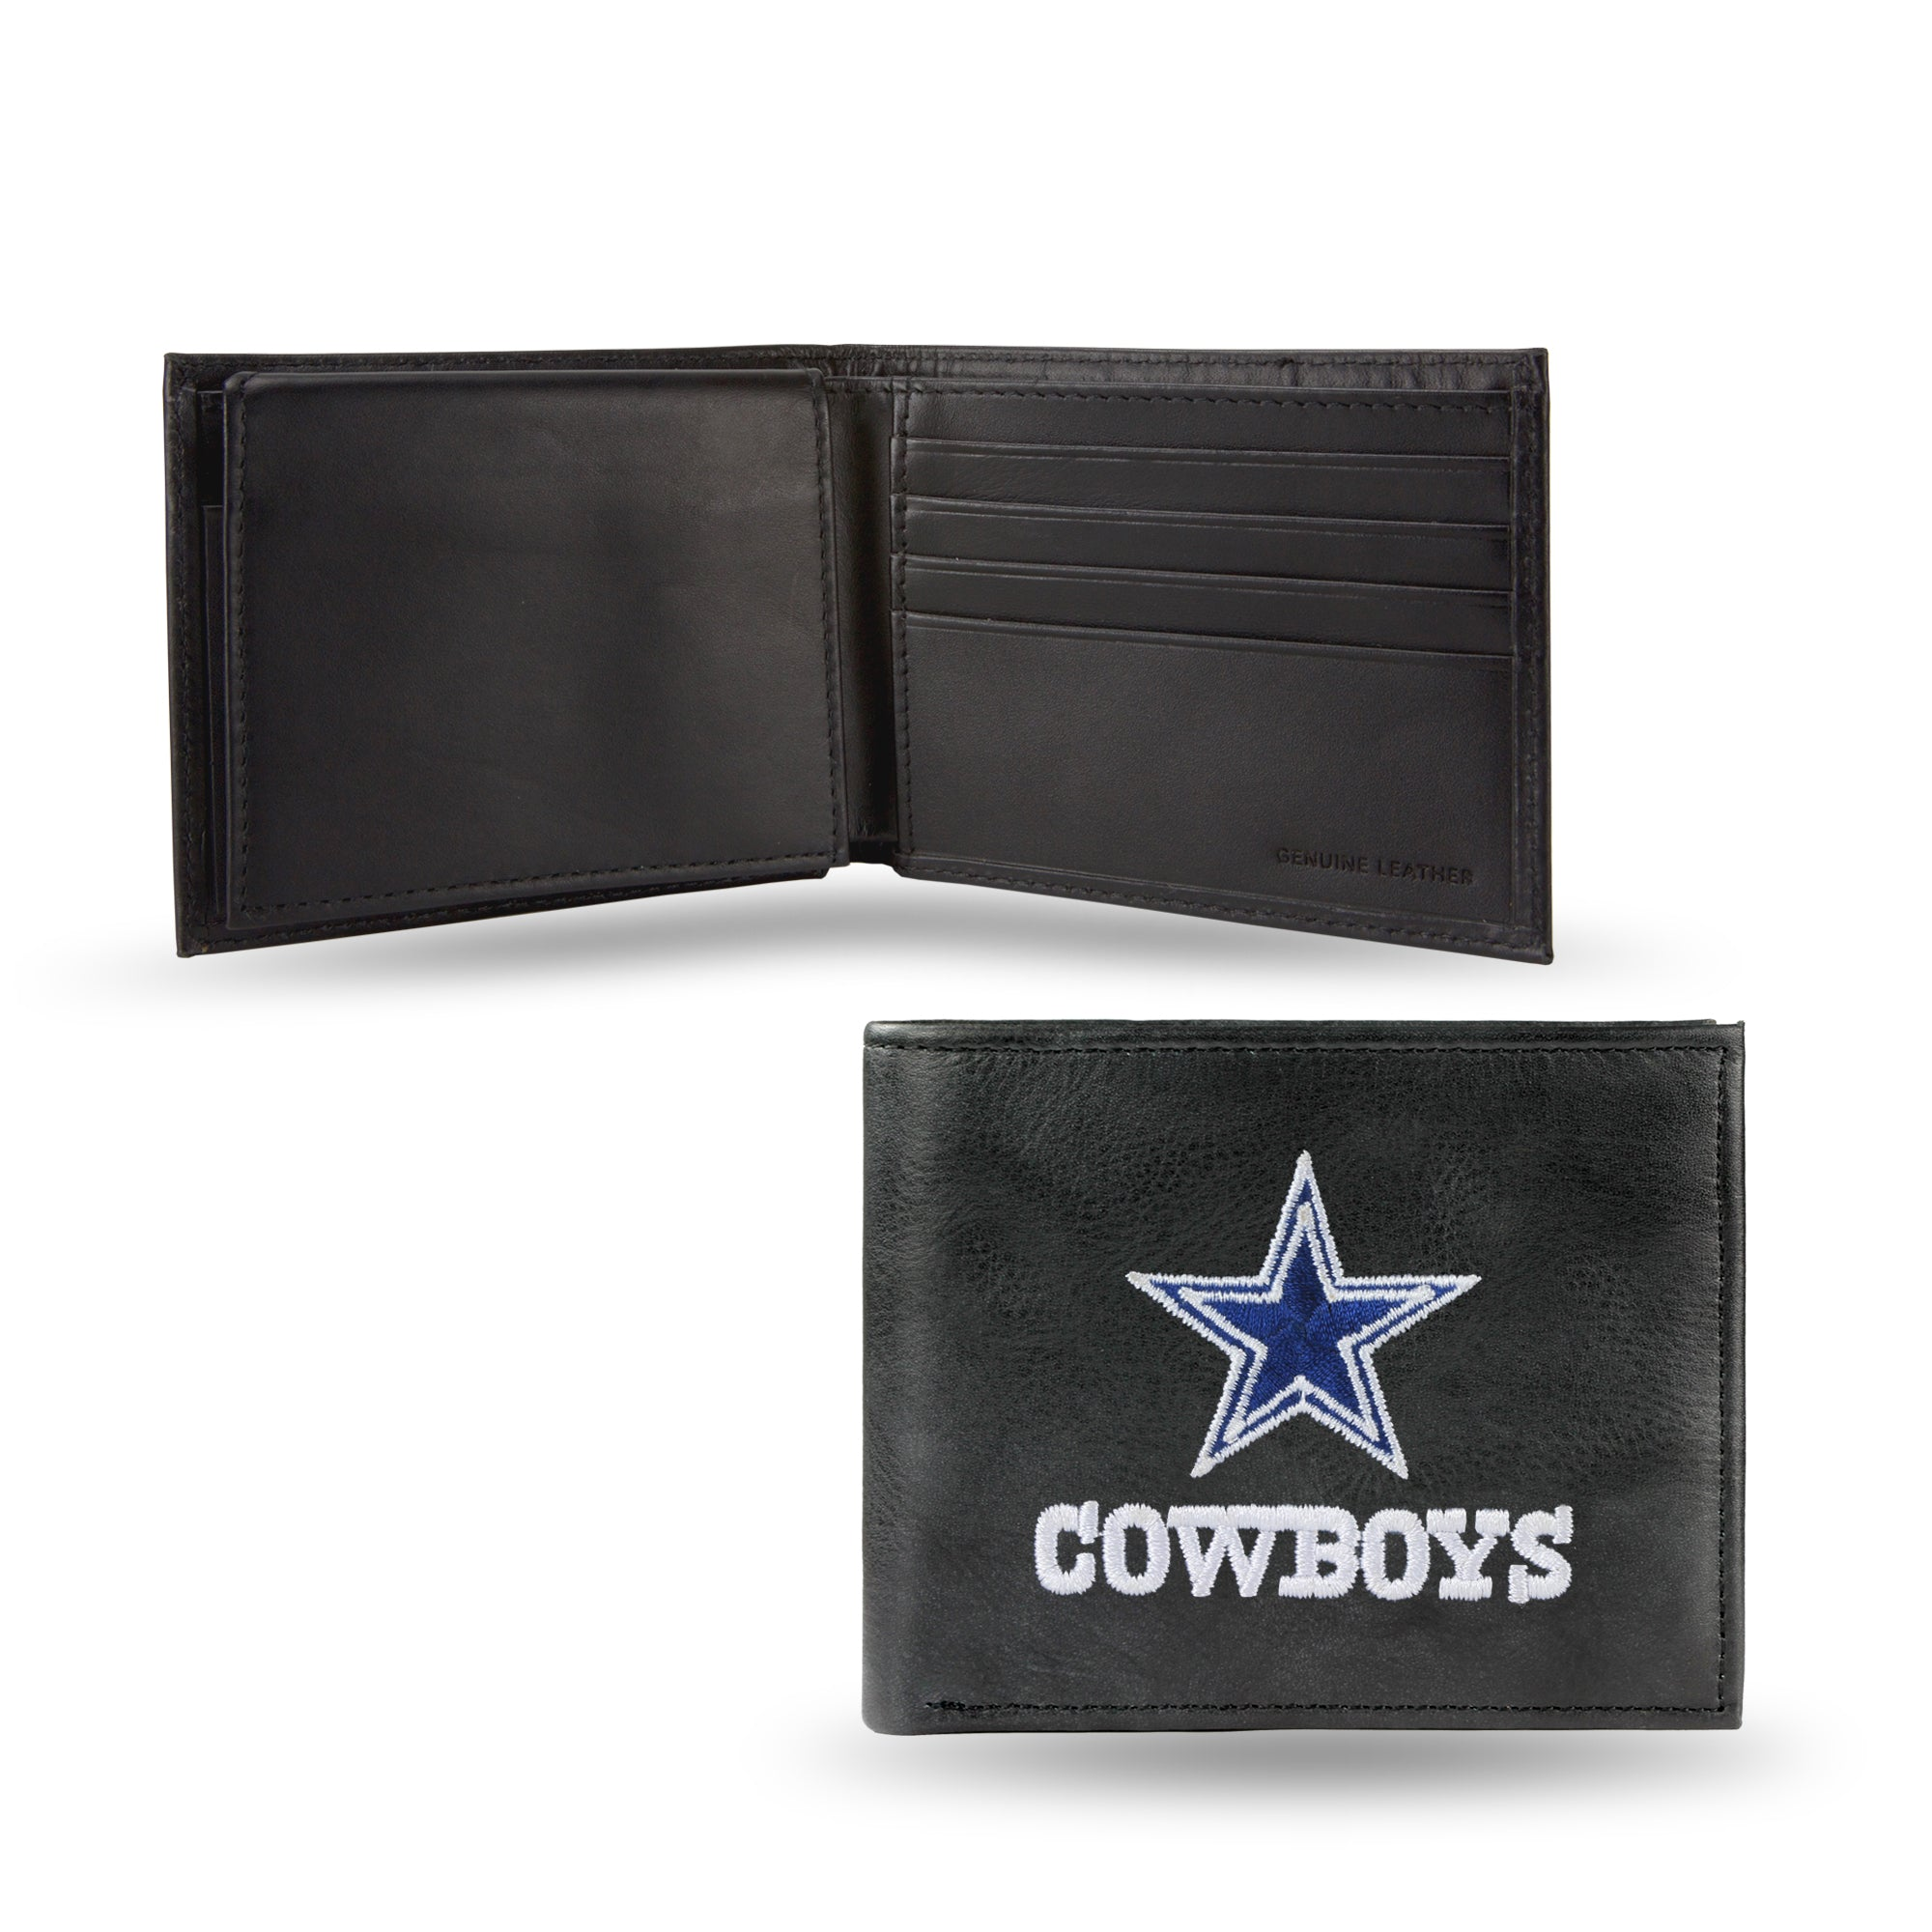 NFL Dallas Cowboys Embroidered Billfold / Wallet